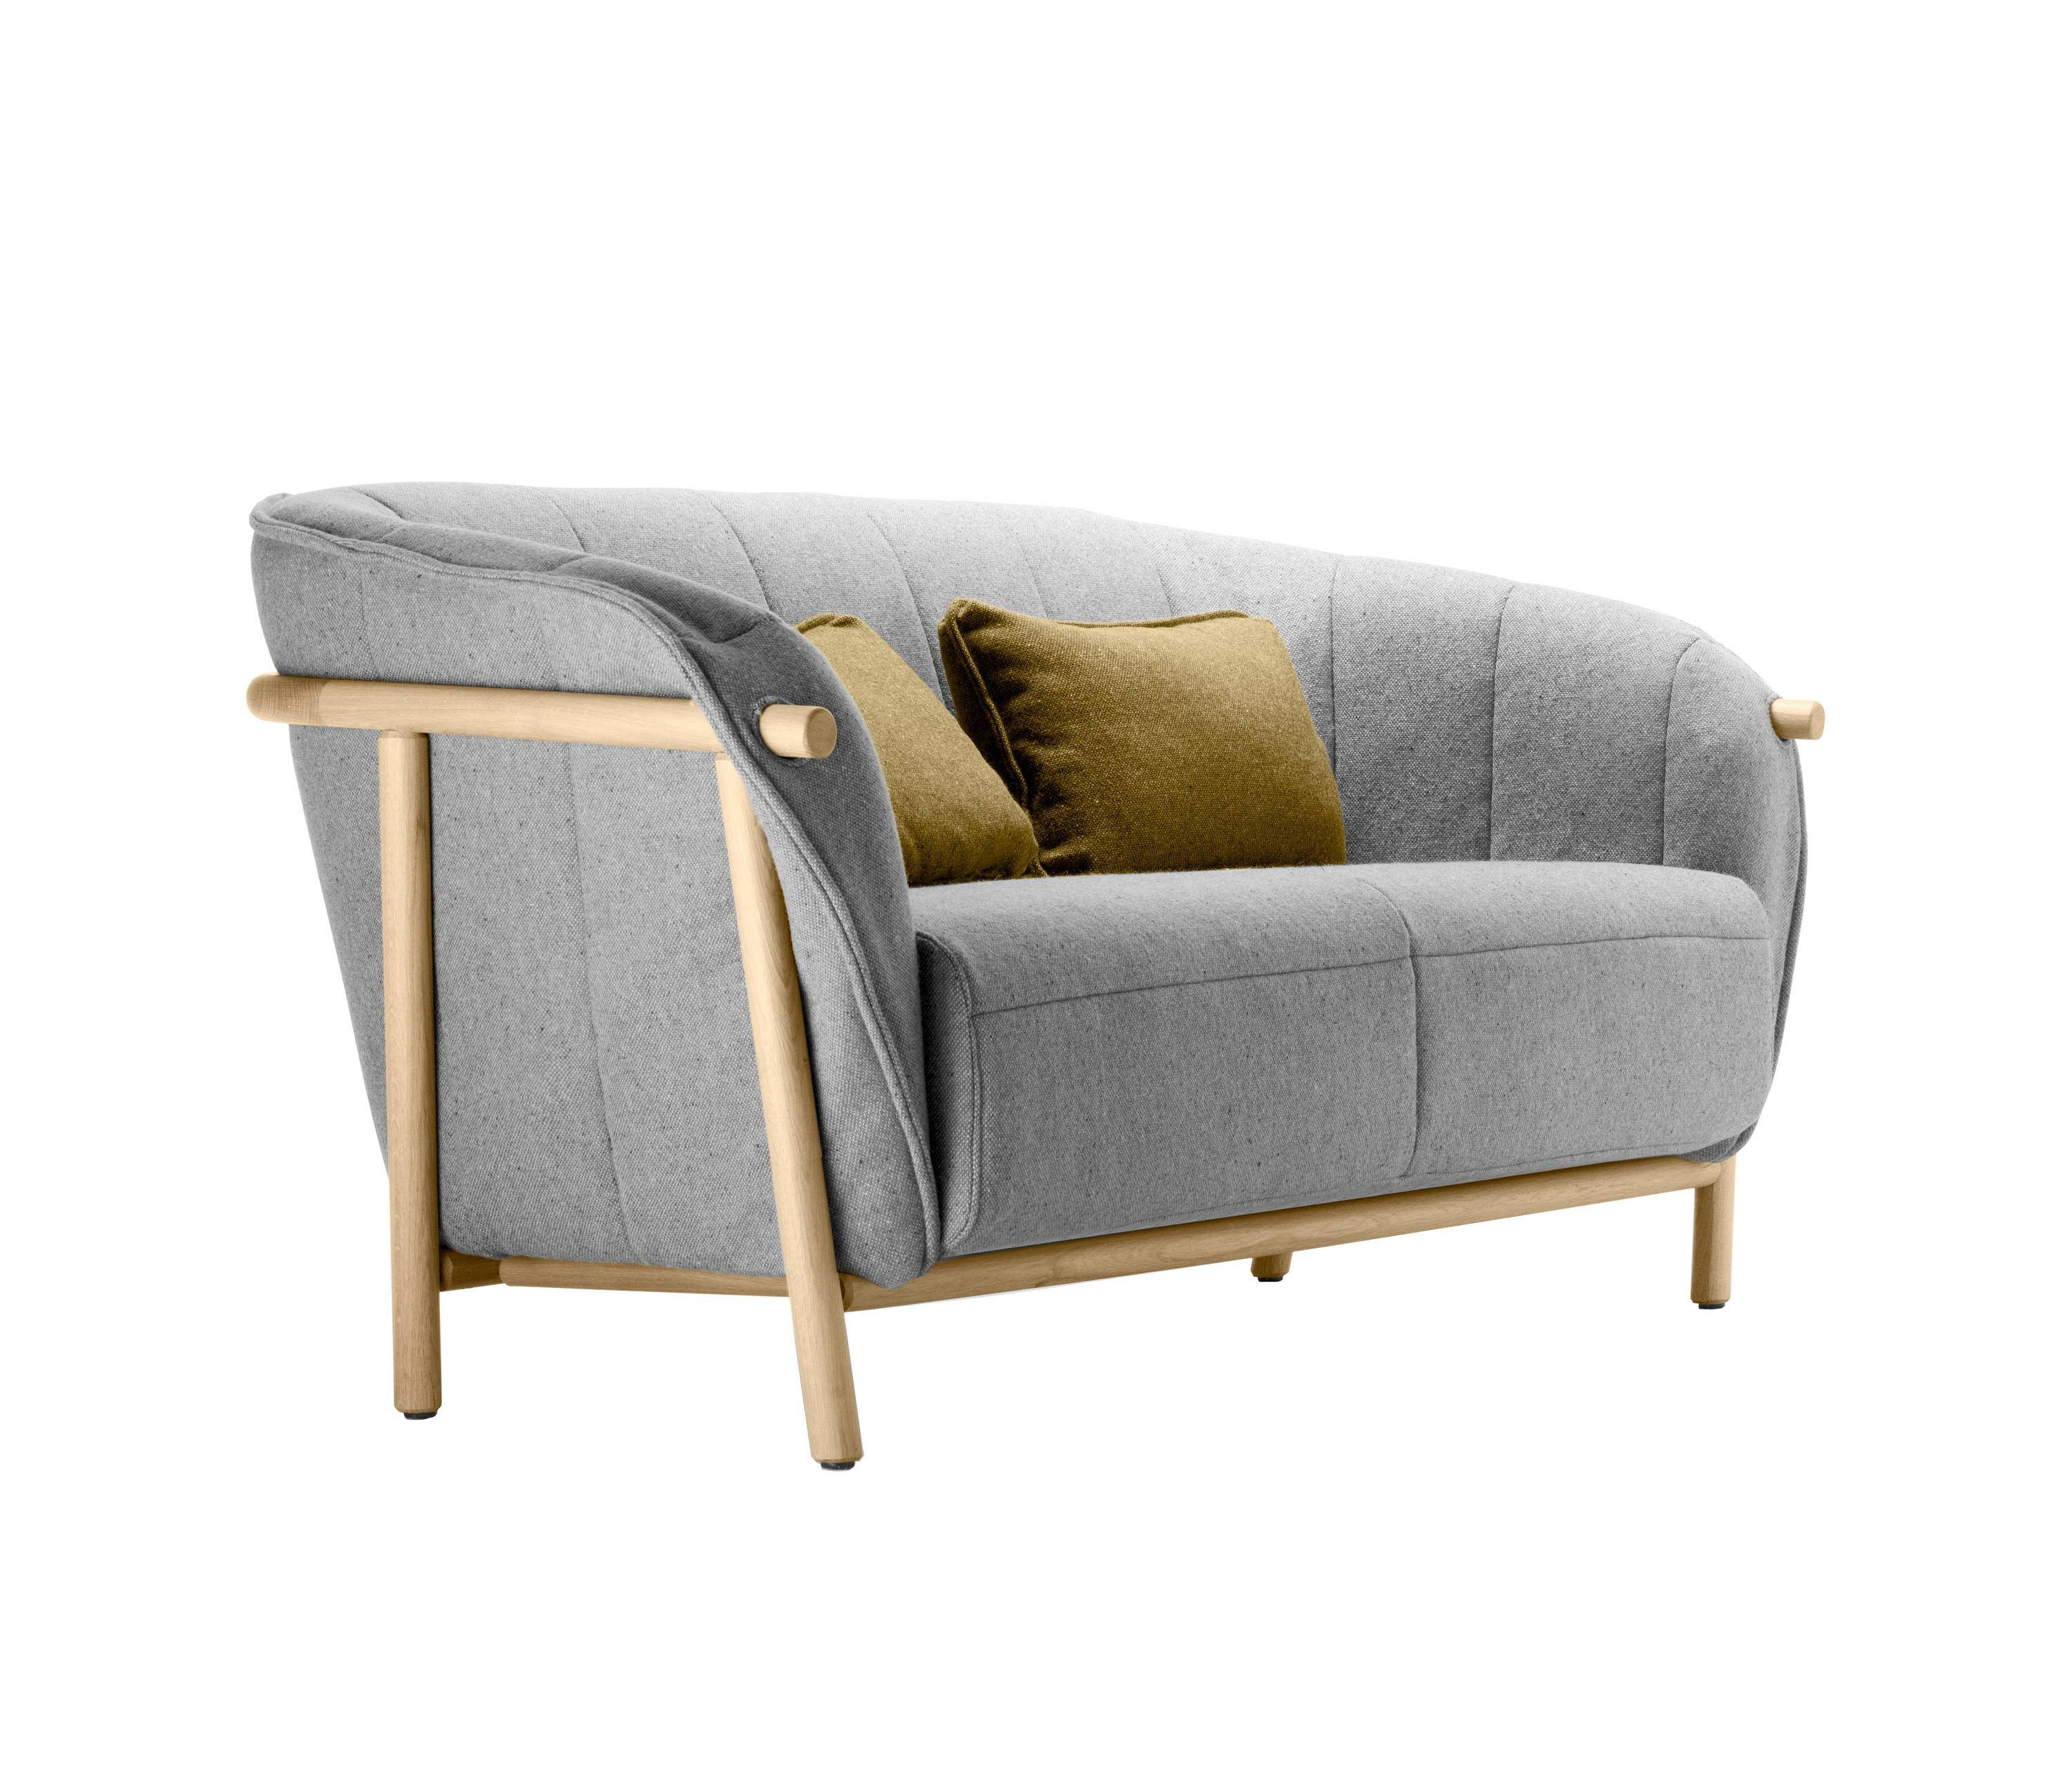 Yas - Lounge Sofas From Bosc | Architonic with regard to Coffin Sofas (Image 15 of 15)